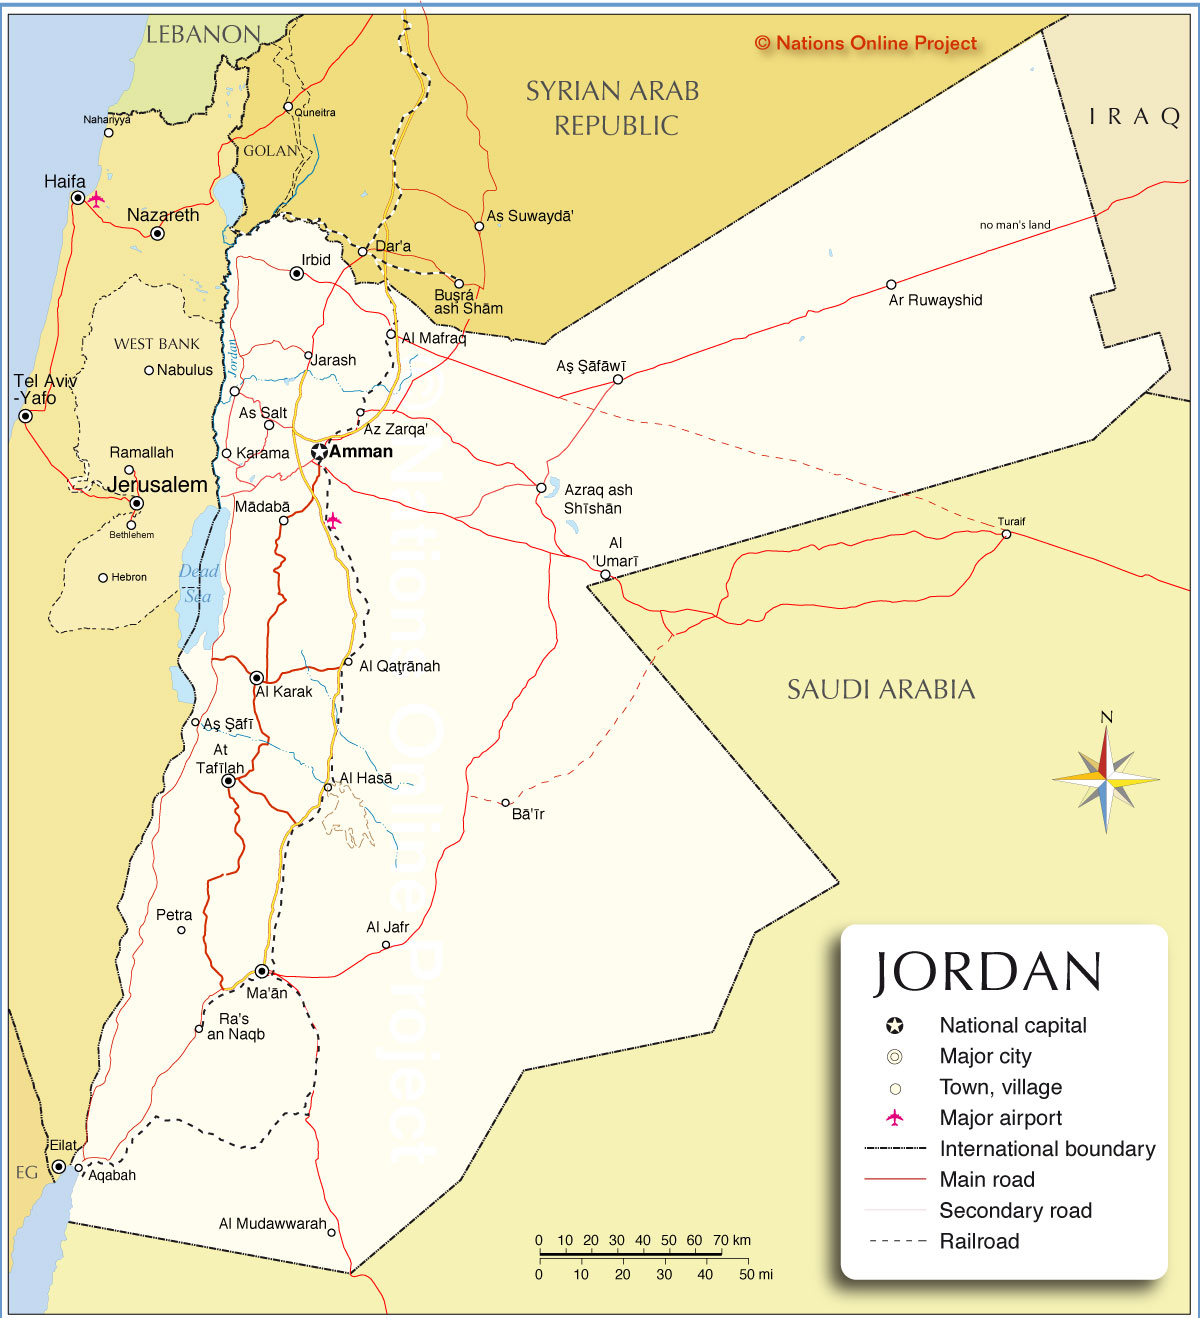 Jordan Political Map.Political Map Of Jordan Nations Online Project